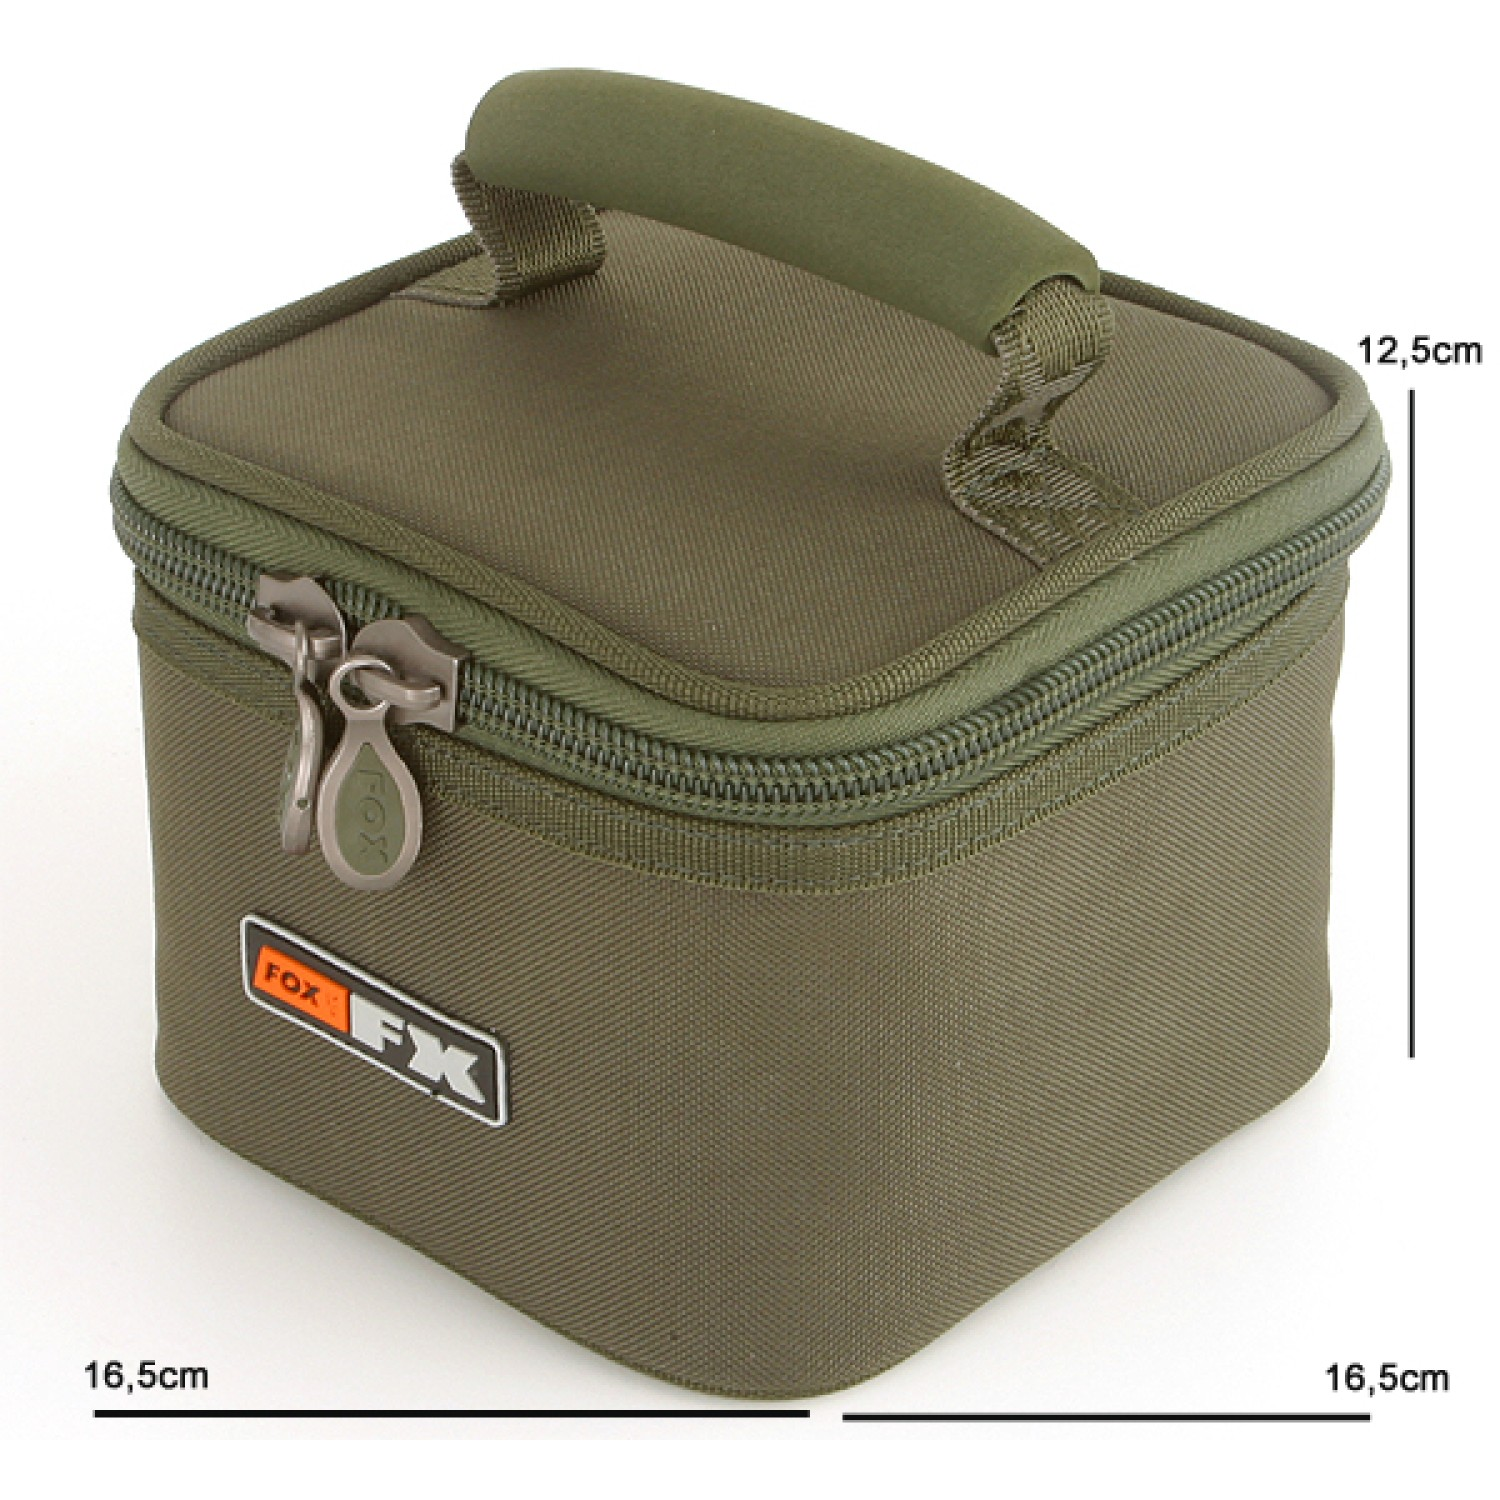 FOX FX Glug and Cooler Case